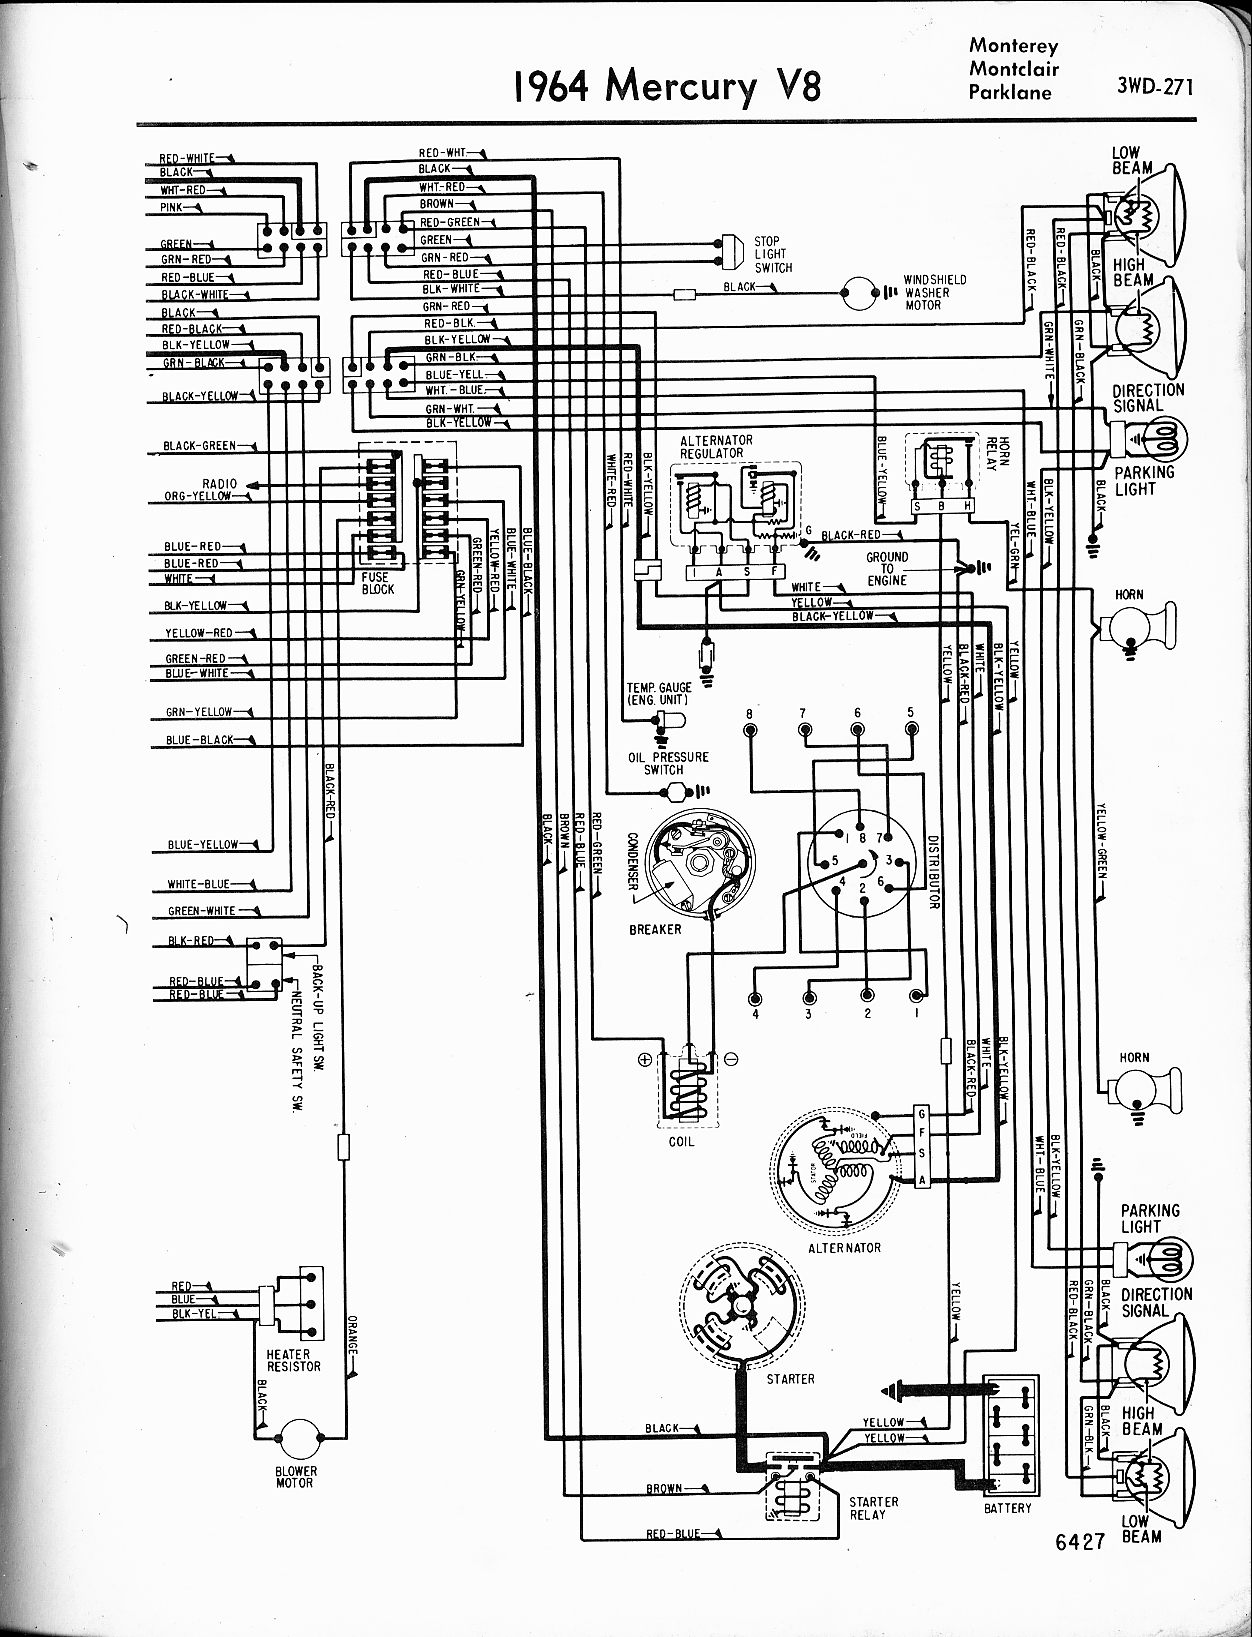 1964 mercury wiring diagram wiring diagram schema  mercury wiring diagrams the old car manual project 1964 mercury monterey wiring diagram 1964 mercury wiring diagram